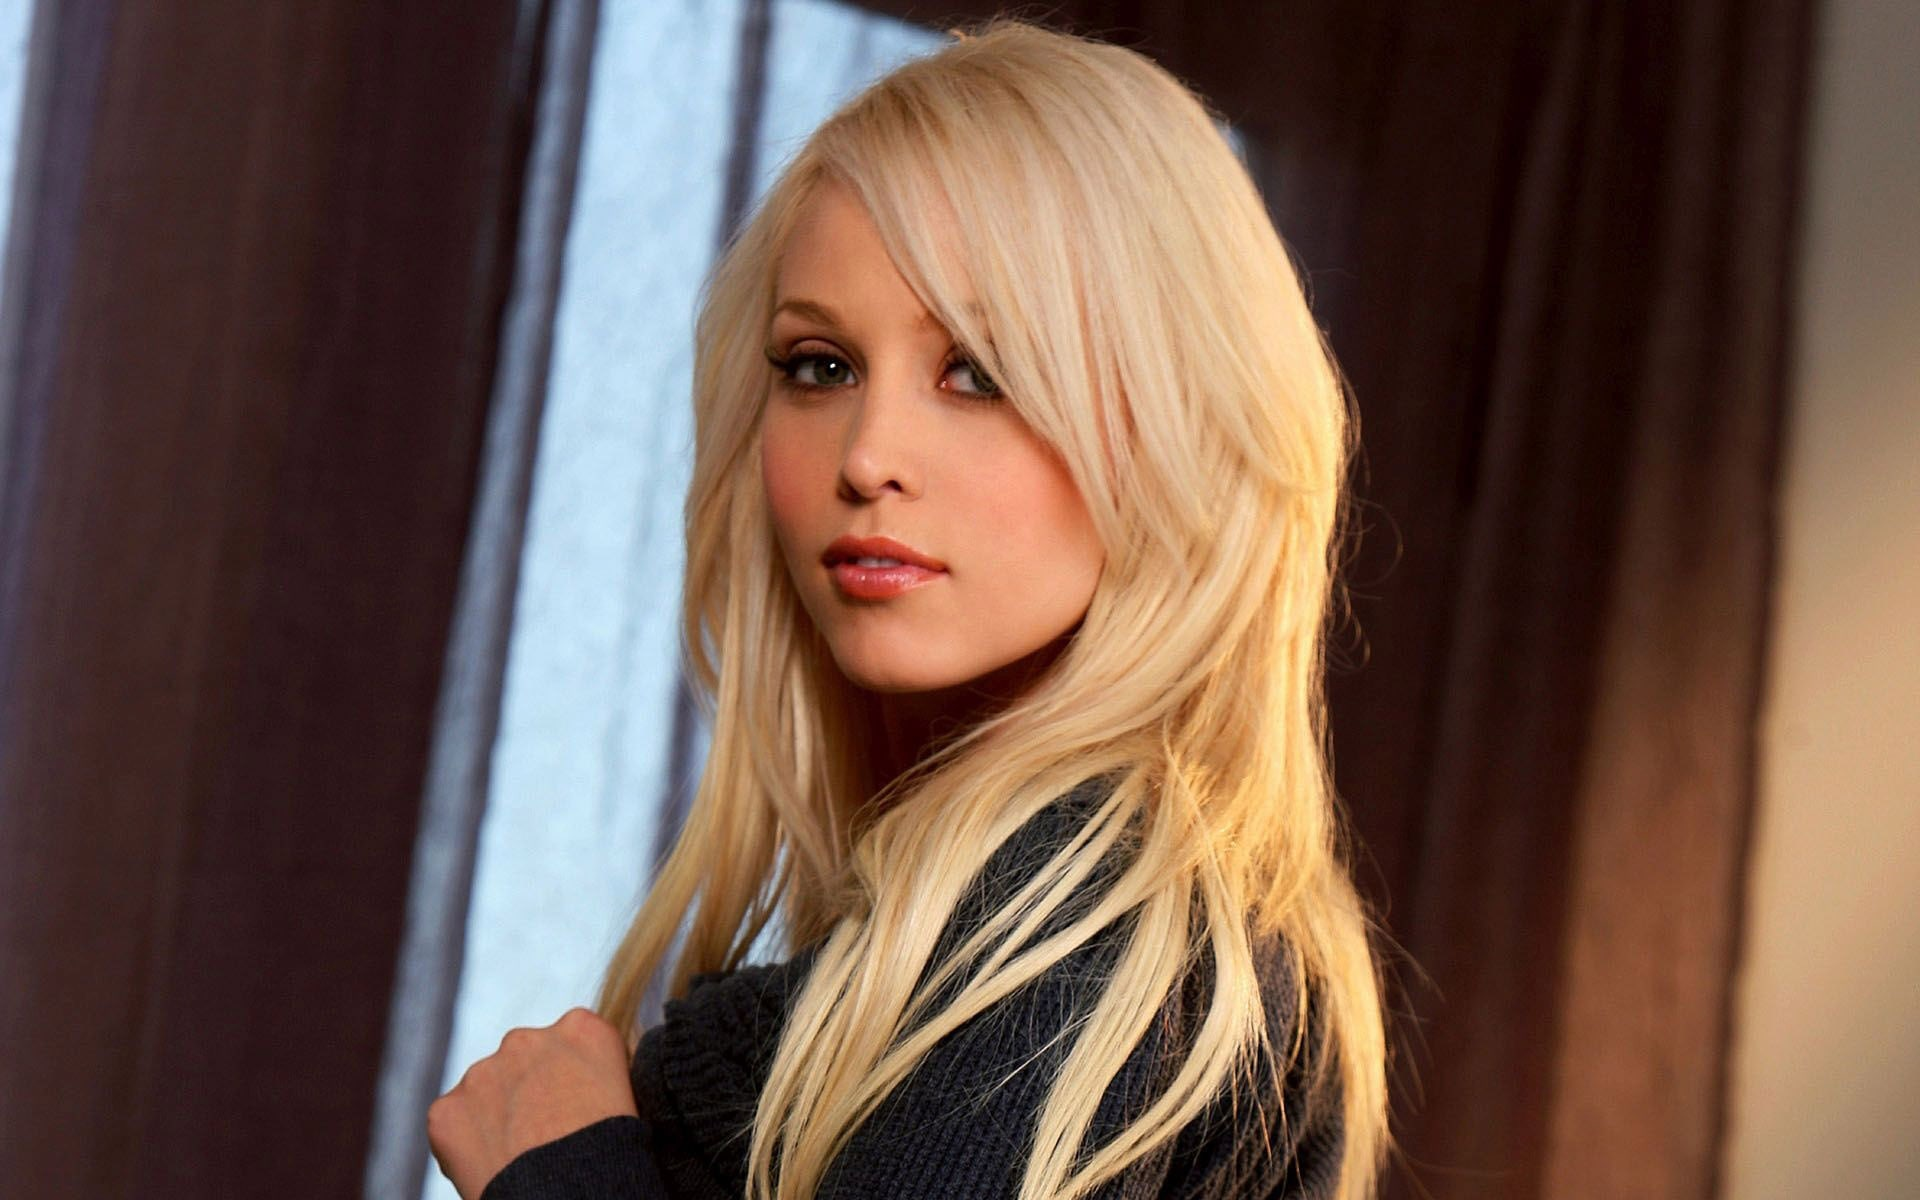 Brea Bennett Wallpaper